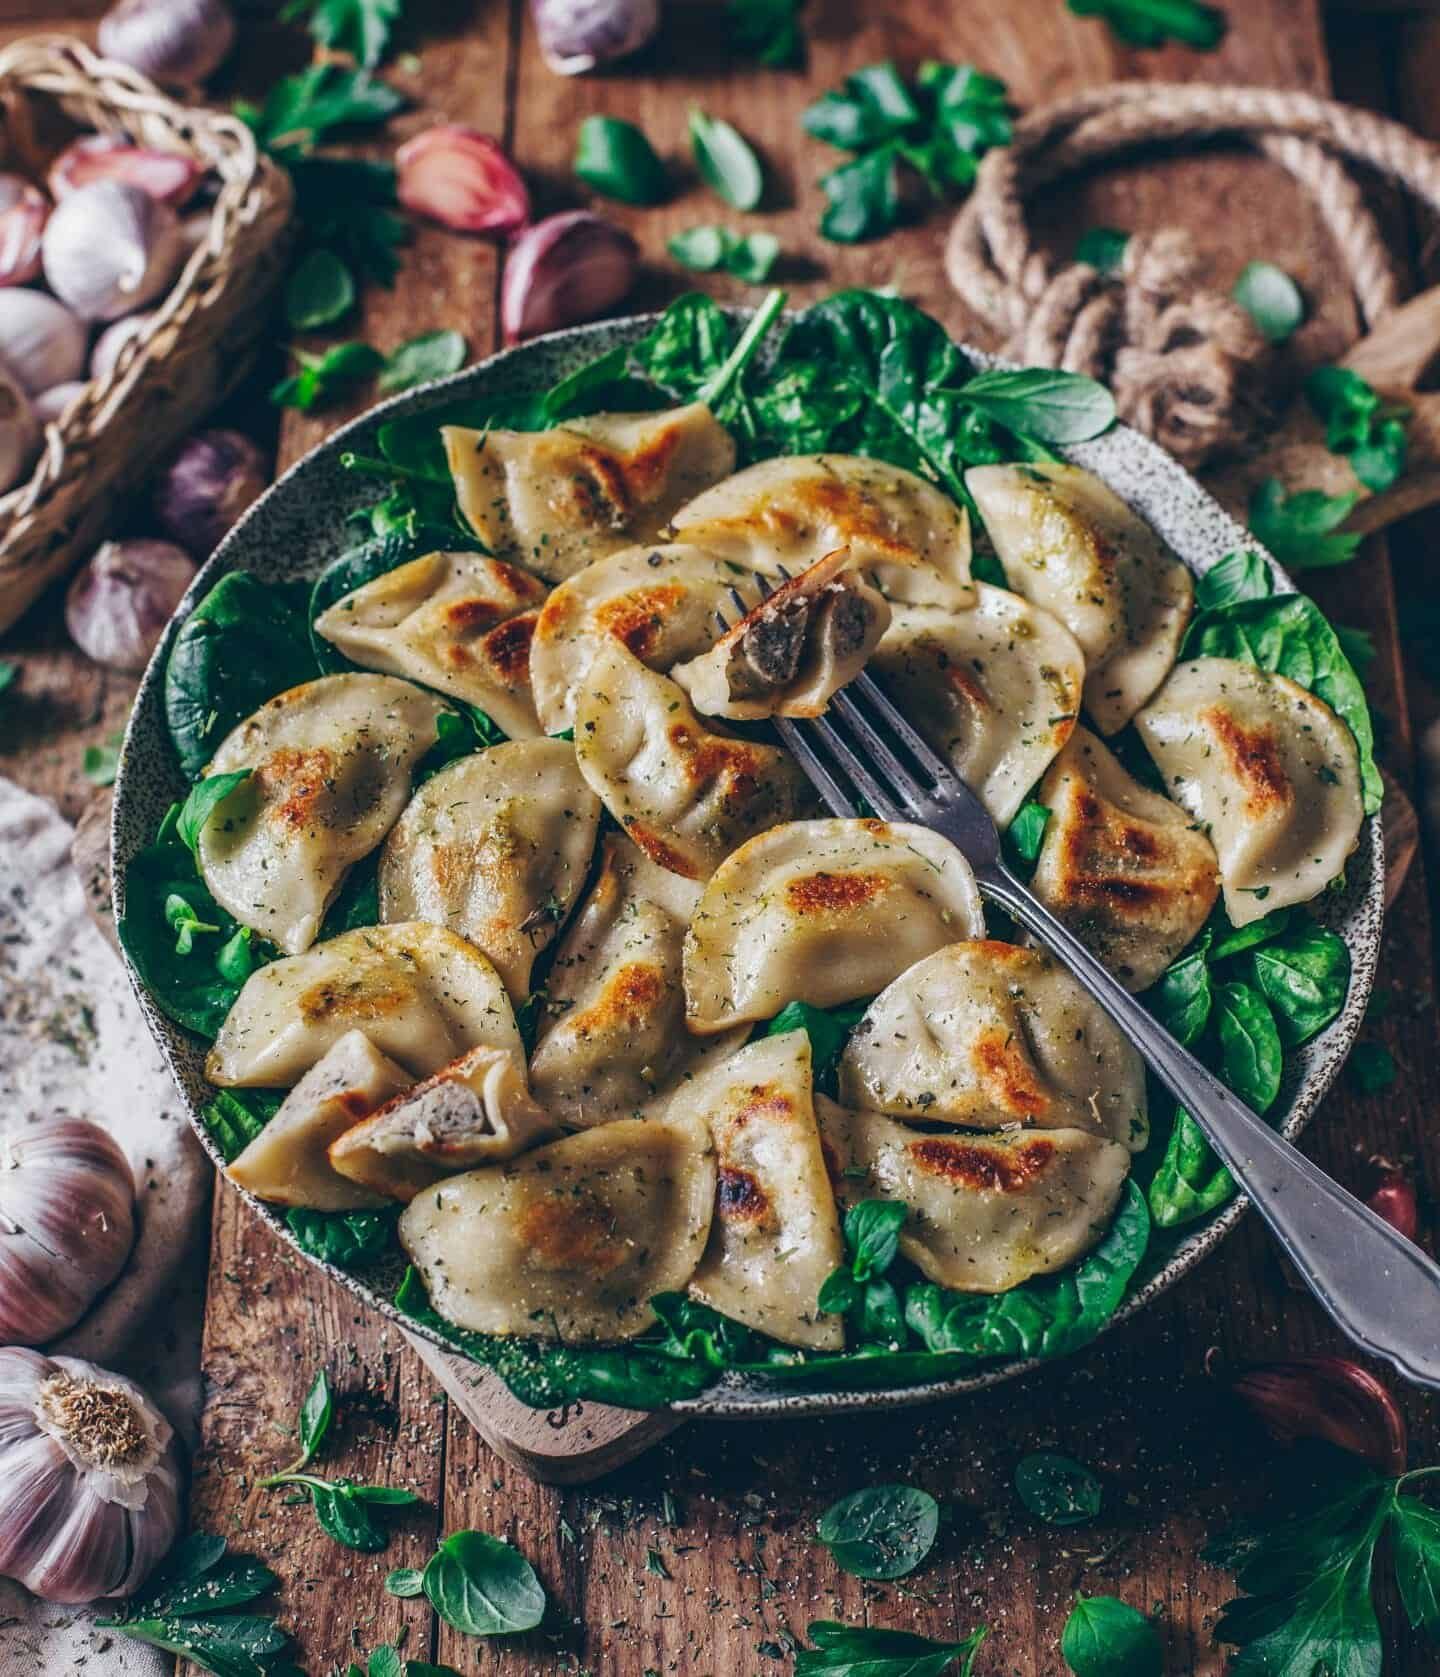 Vegan Pierogi with Mushroom Filling (polish pasta dumplings)